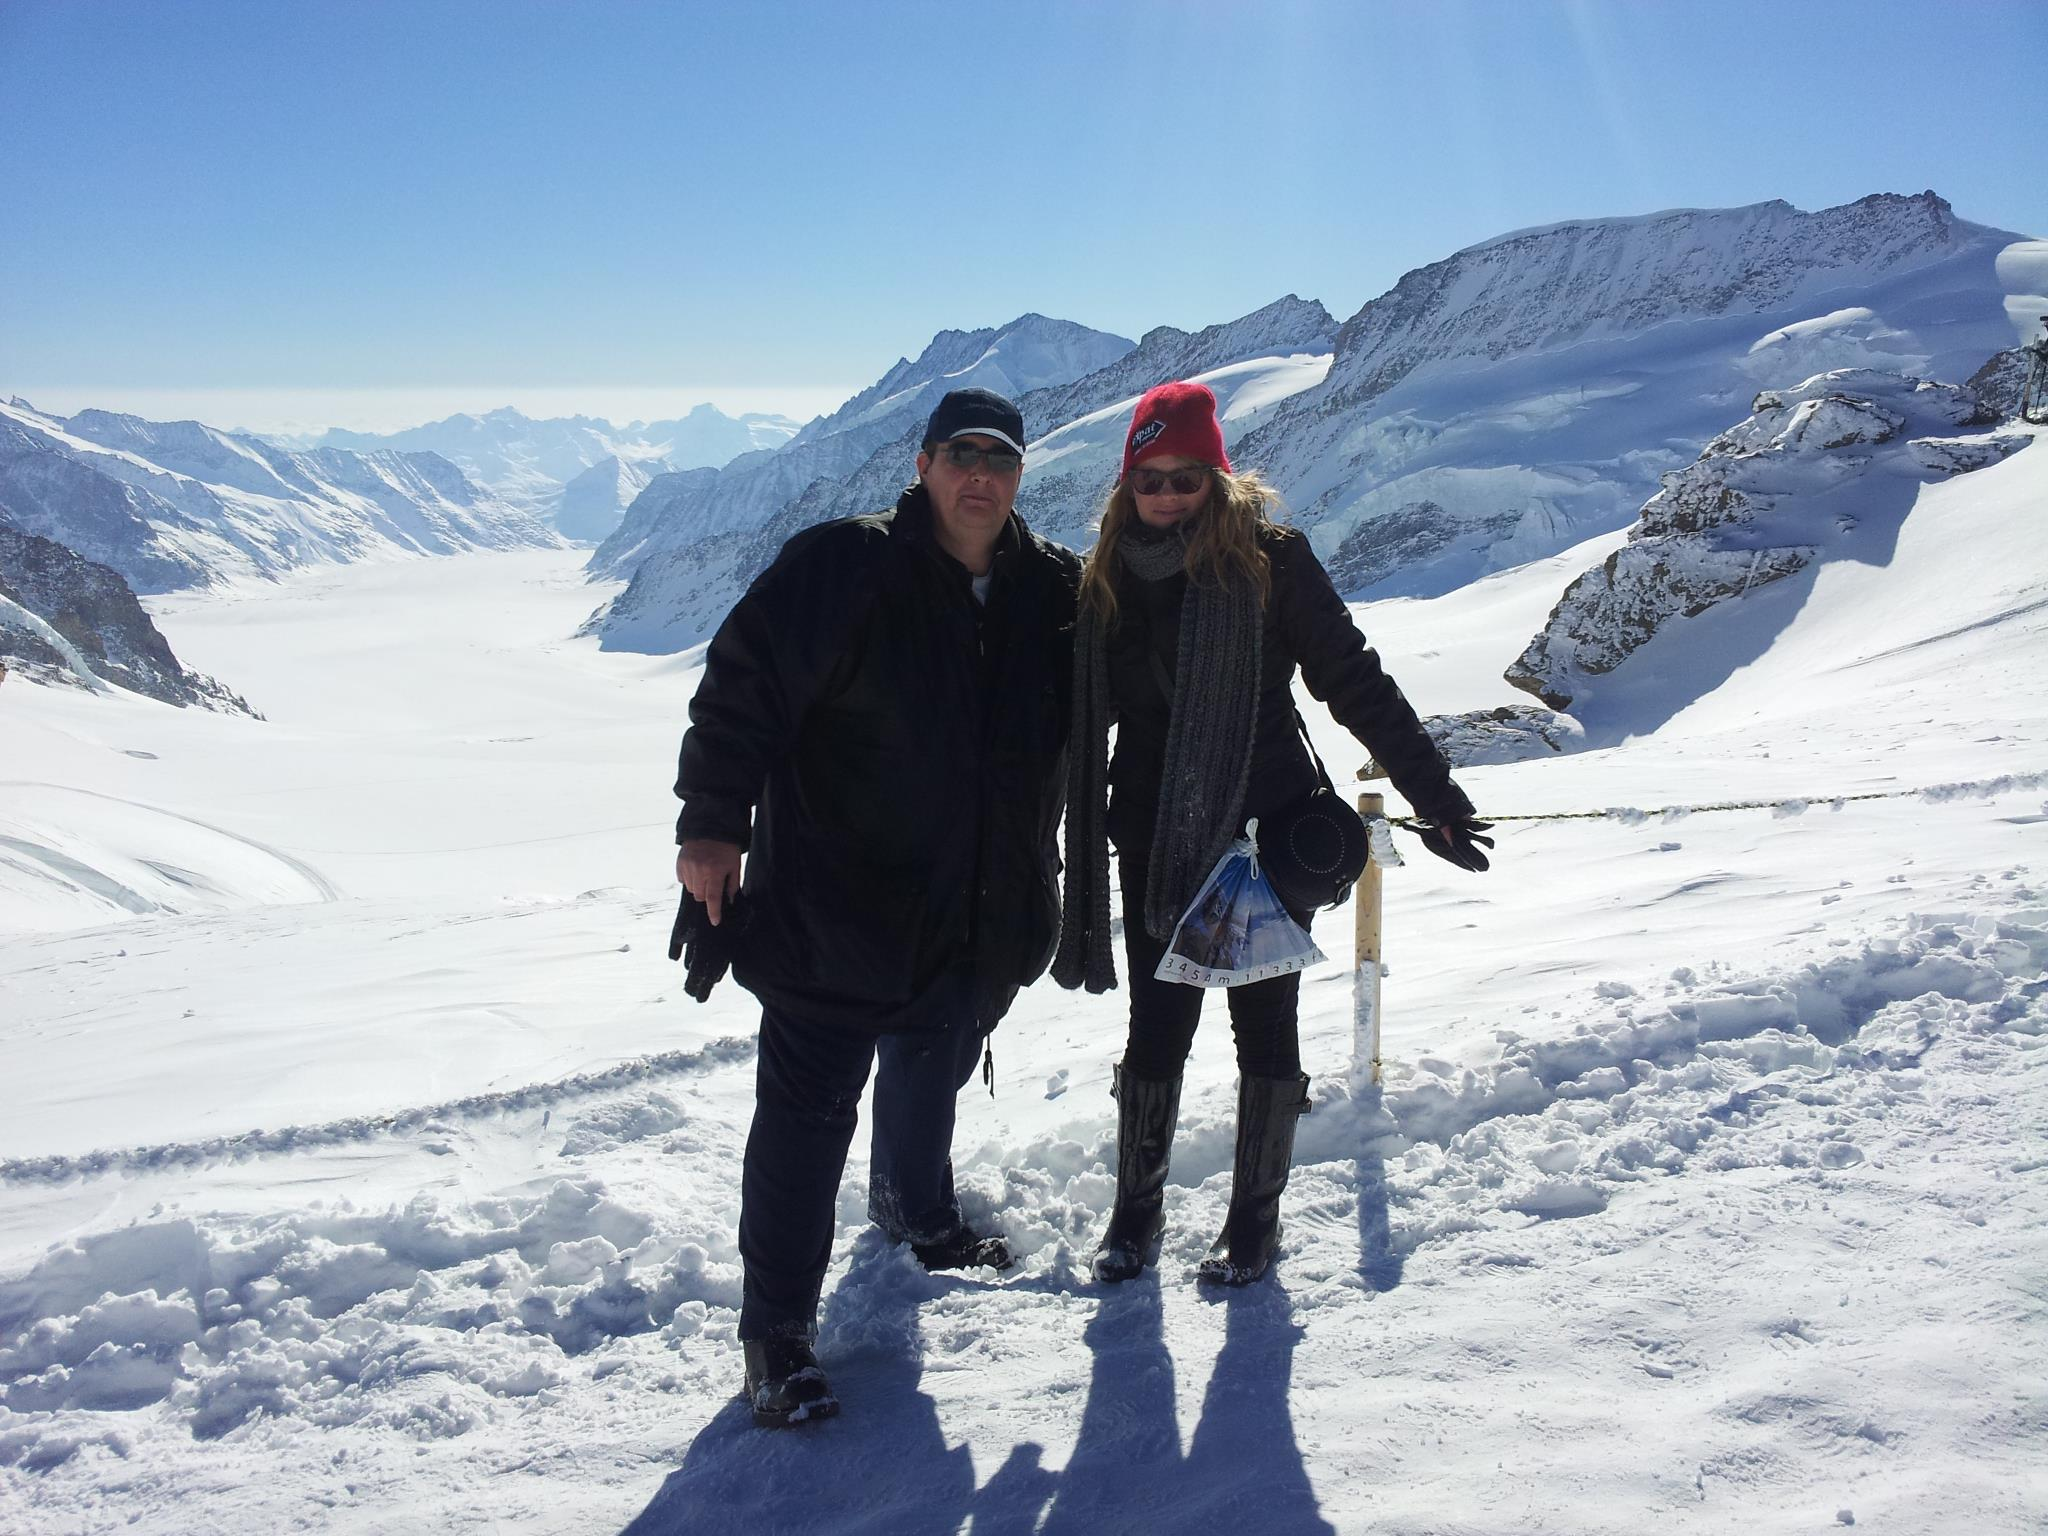 Sarah and driver Gary on top of the highest peak in Europe- Jungfraujoch.